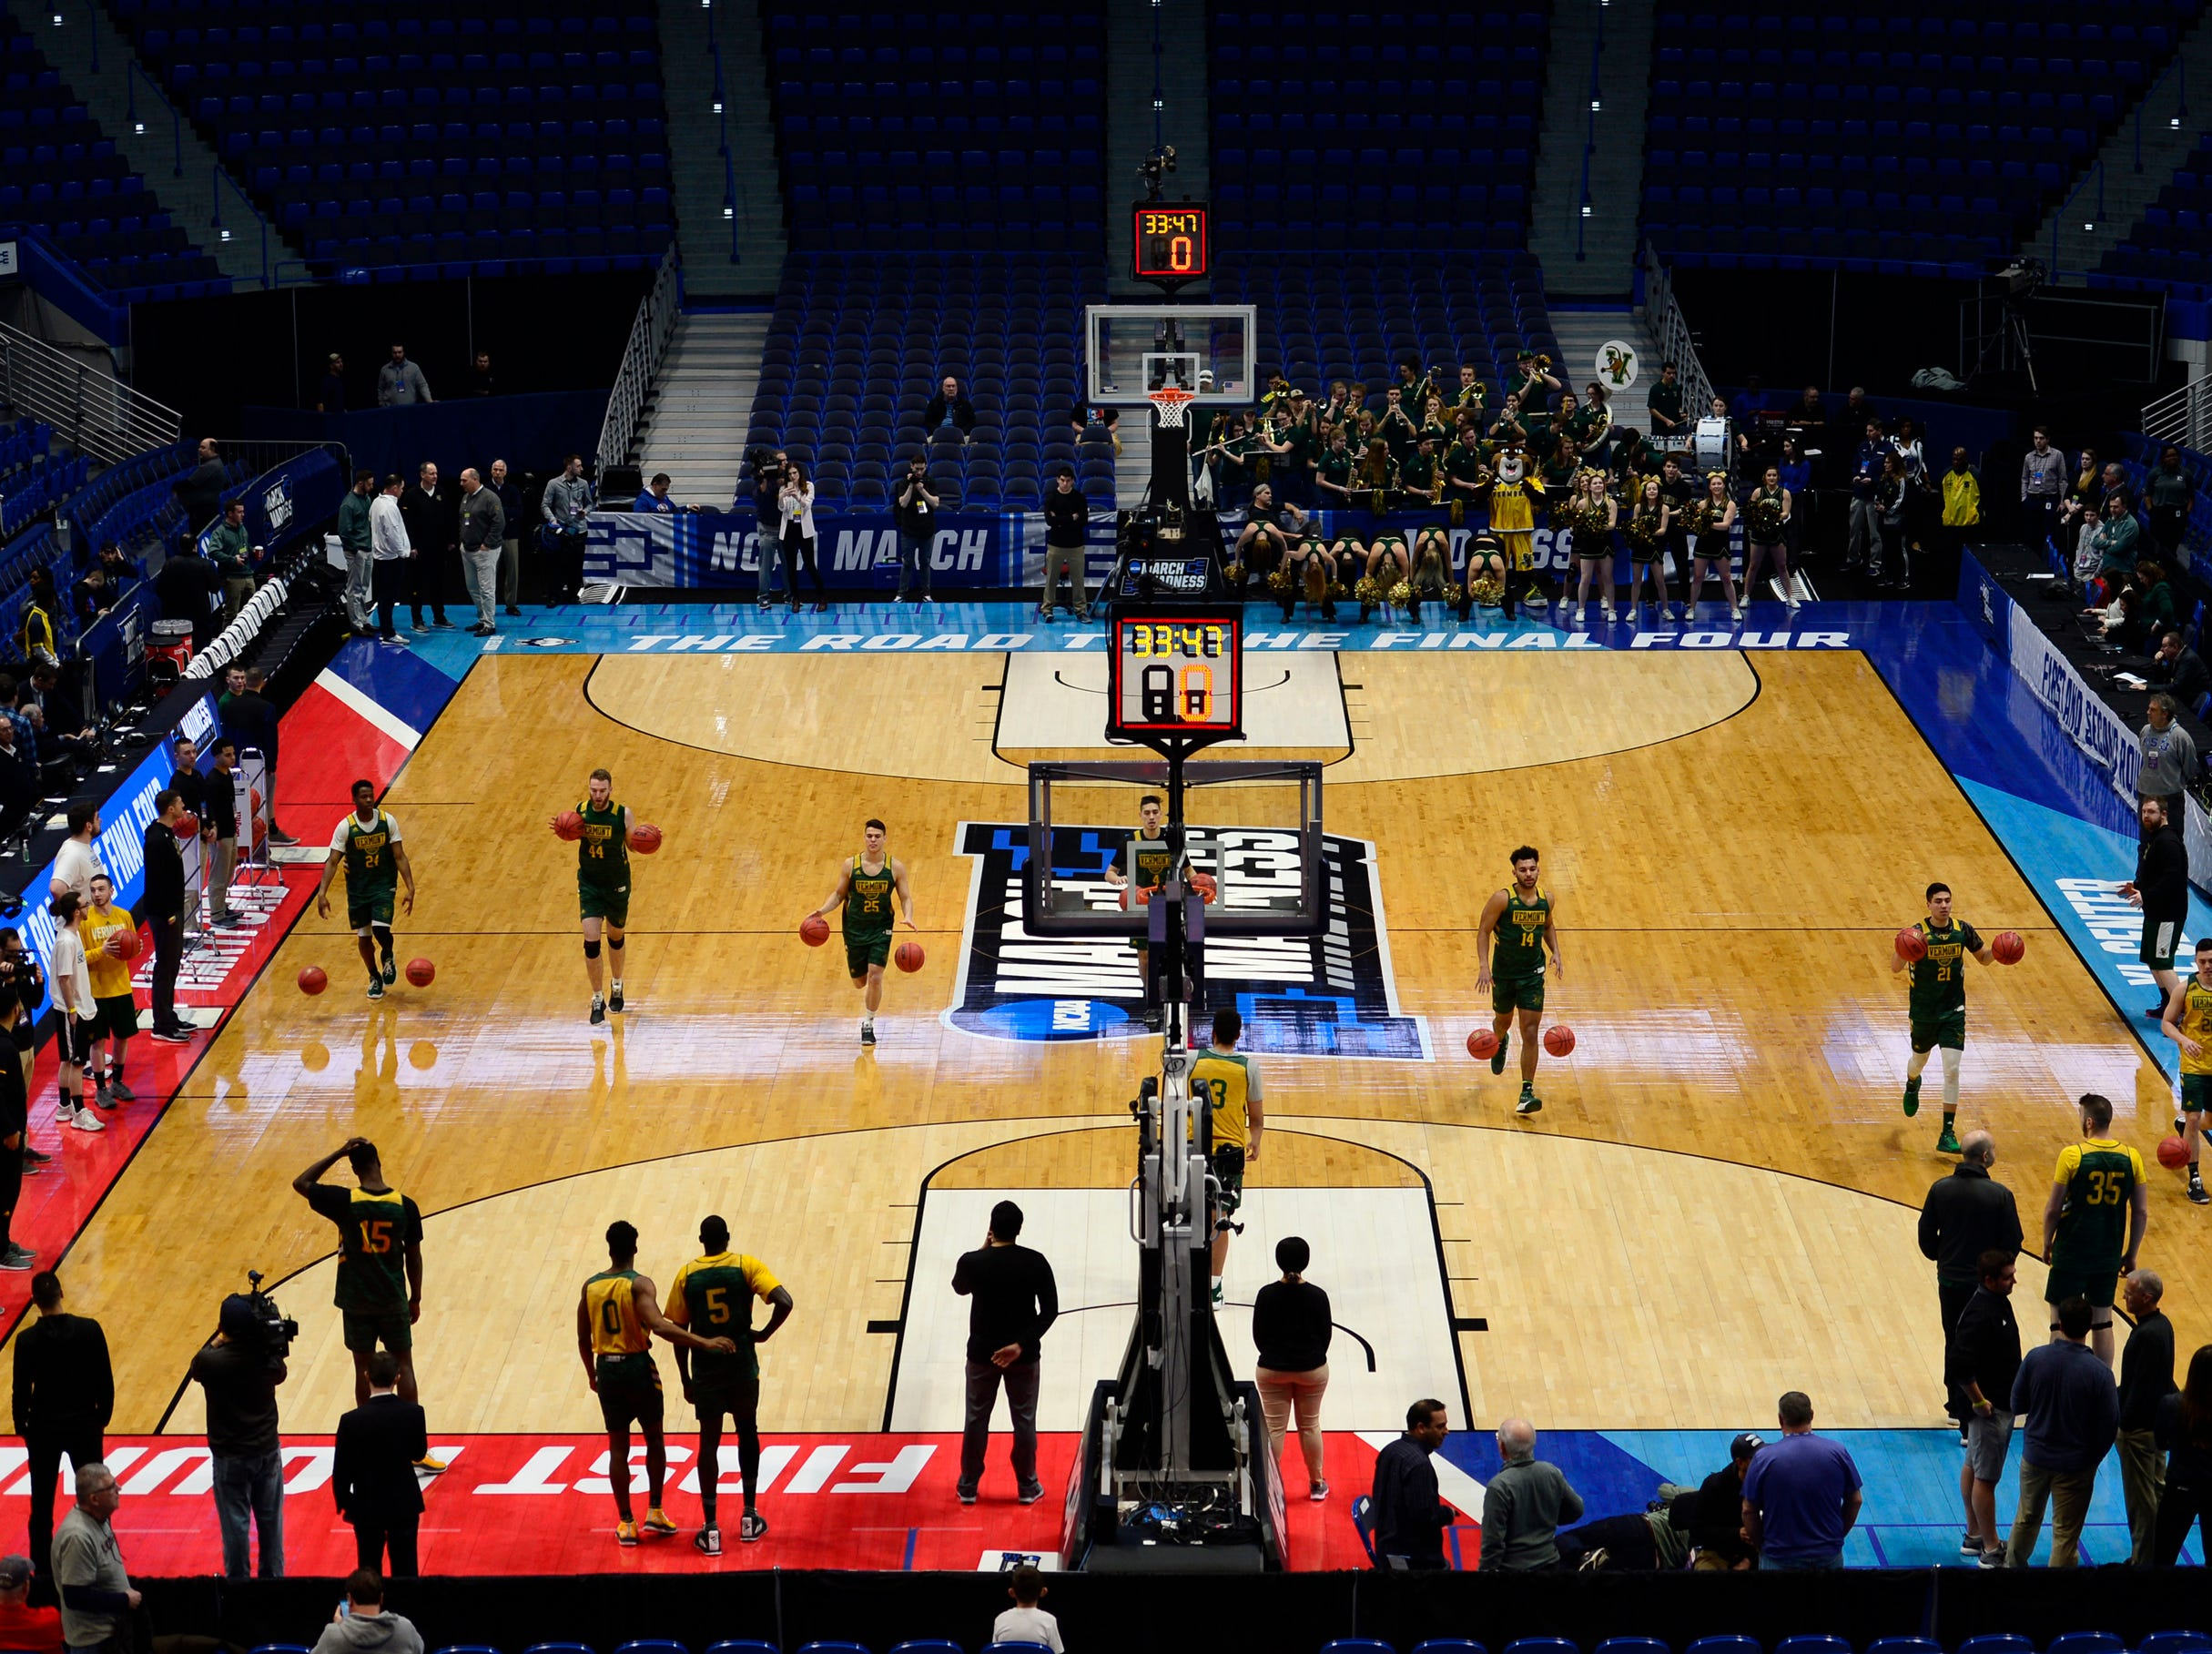 The University of Vermont men's basketball team warms up for its practice at the XL Center on Wednesday in Hartford, Connecticut.